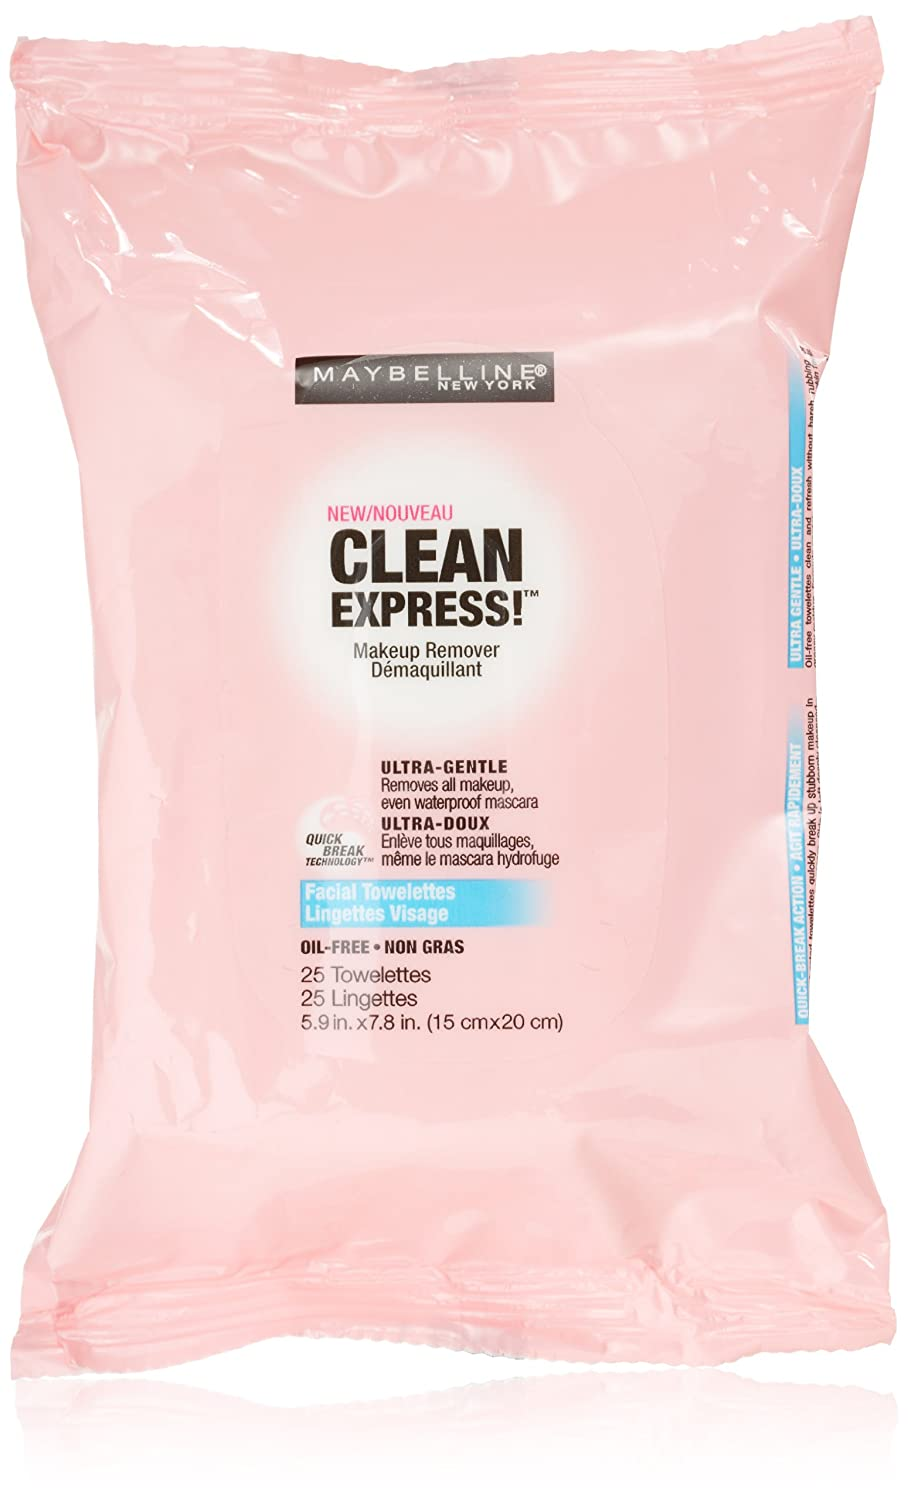 Maybelline New York Clean Express Makeup Remover Facial Towelettes, 25 Count Pack of 3